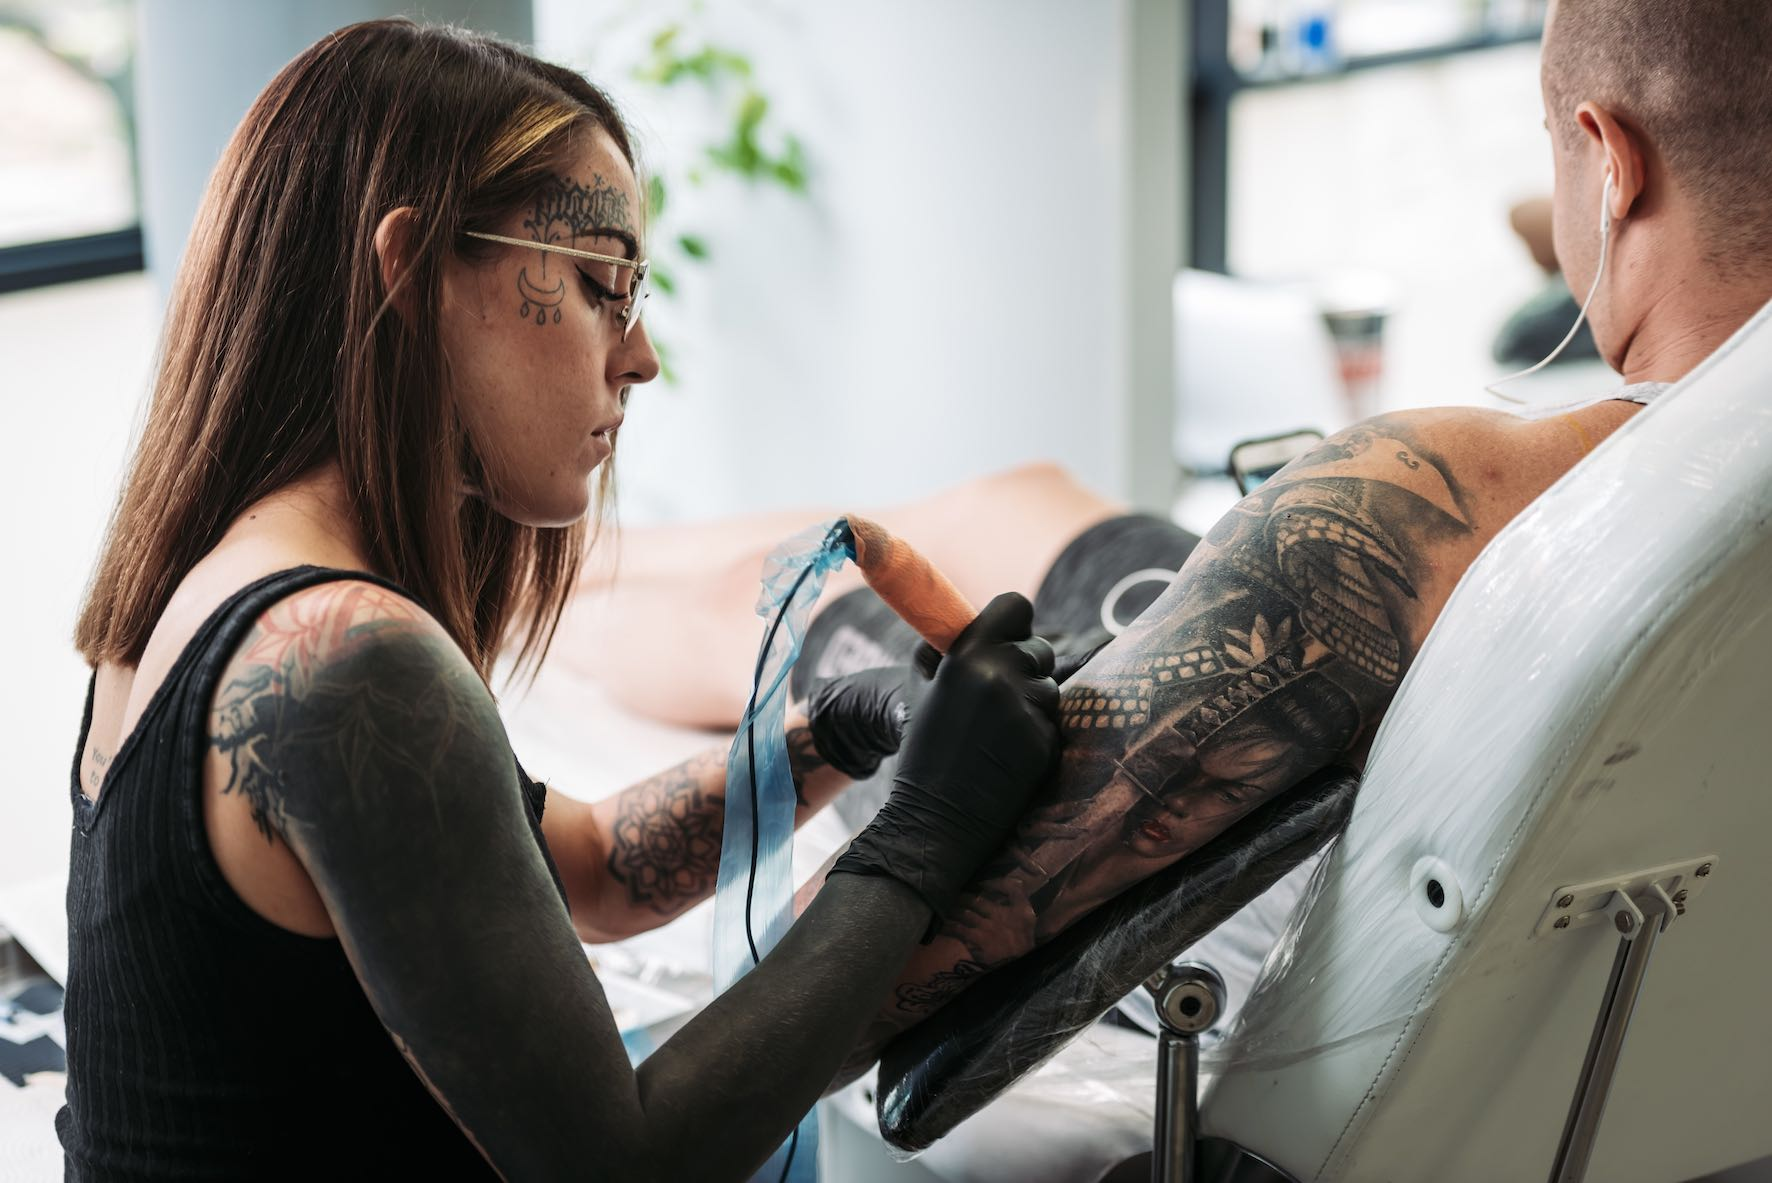 We talks tattoos with Lileen van den Berg